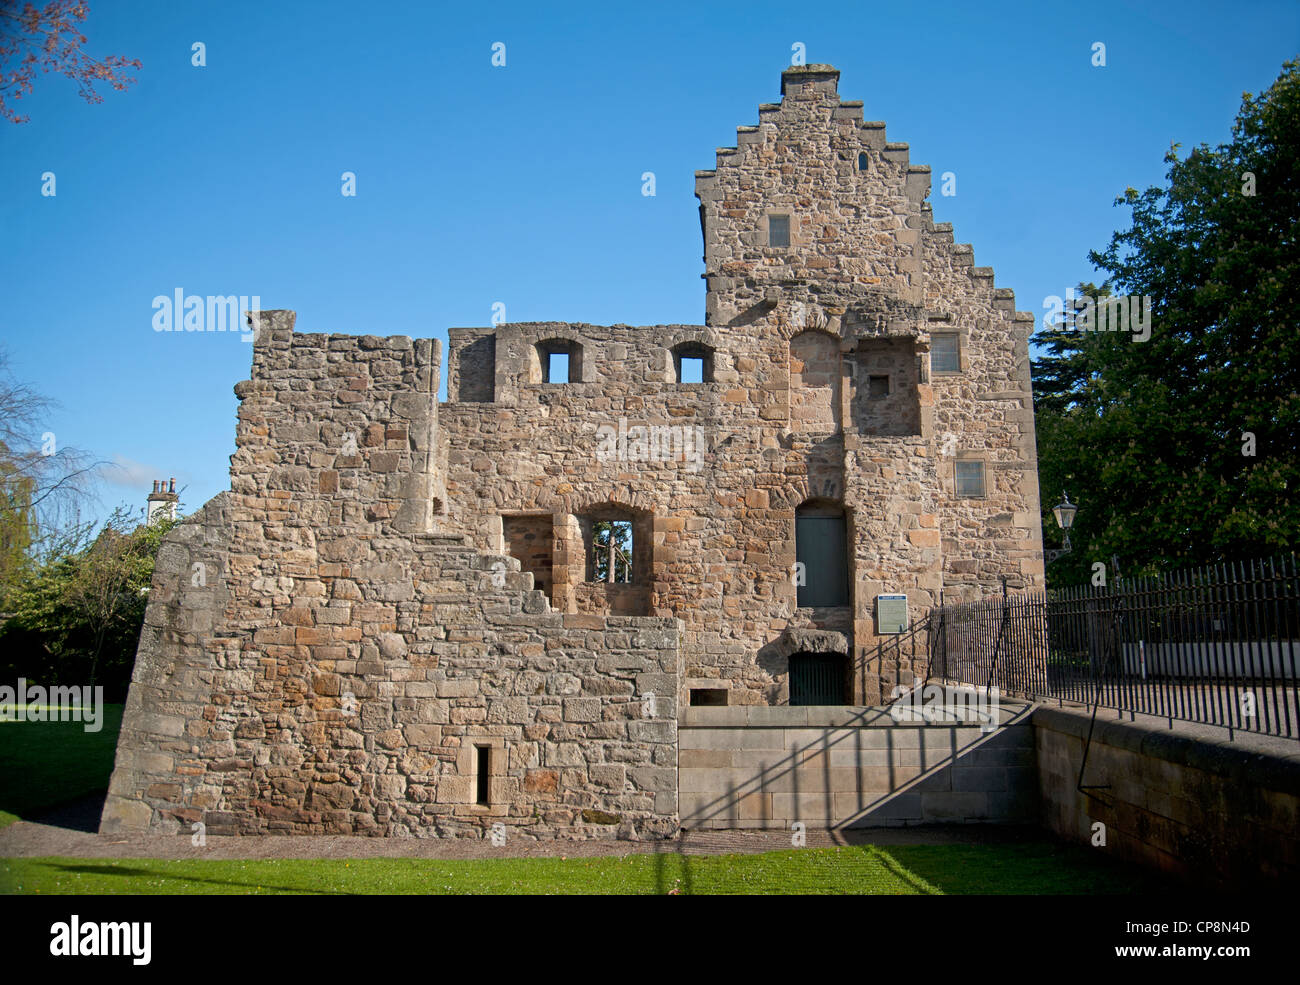 The Bishops Palace by Elgin Cathedral, Moray, Grampian Region. Scotland.  SCO 8220 Stock Photo